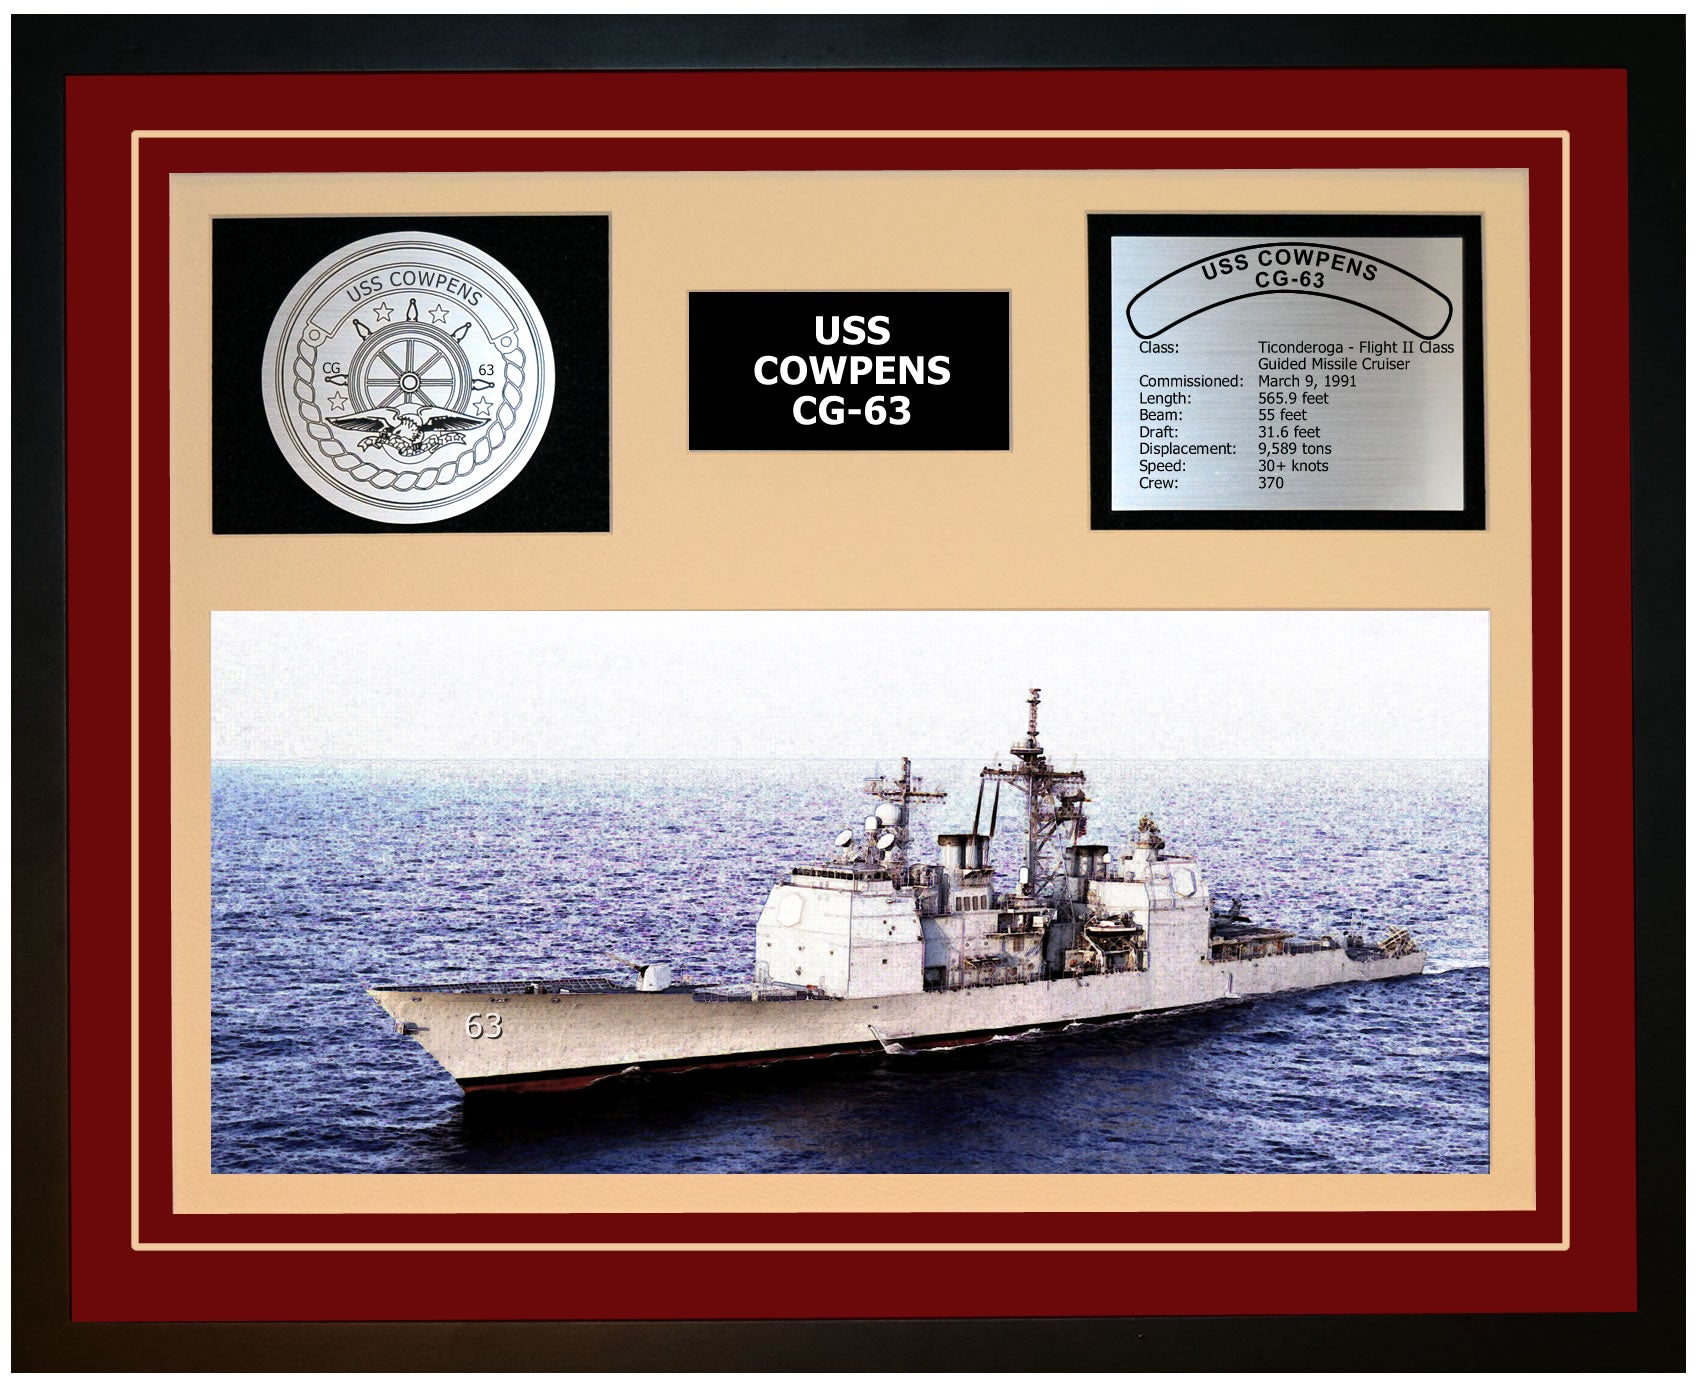 USS COWPENS CG-63 Framed Navy Ship Display Burgundy